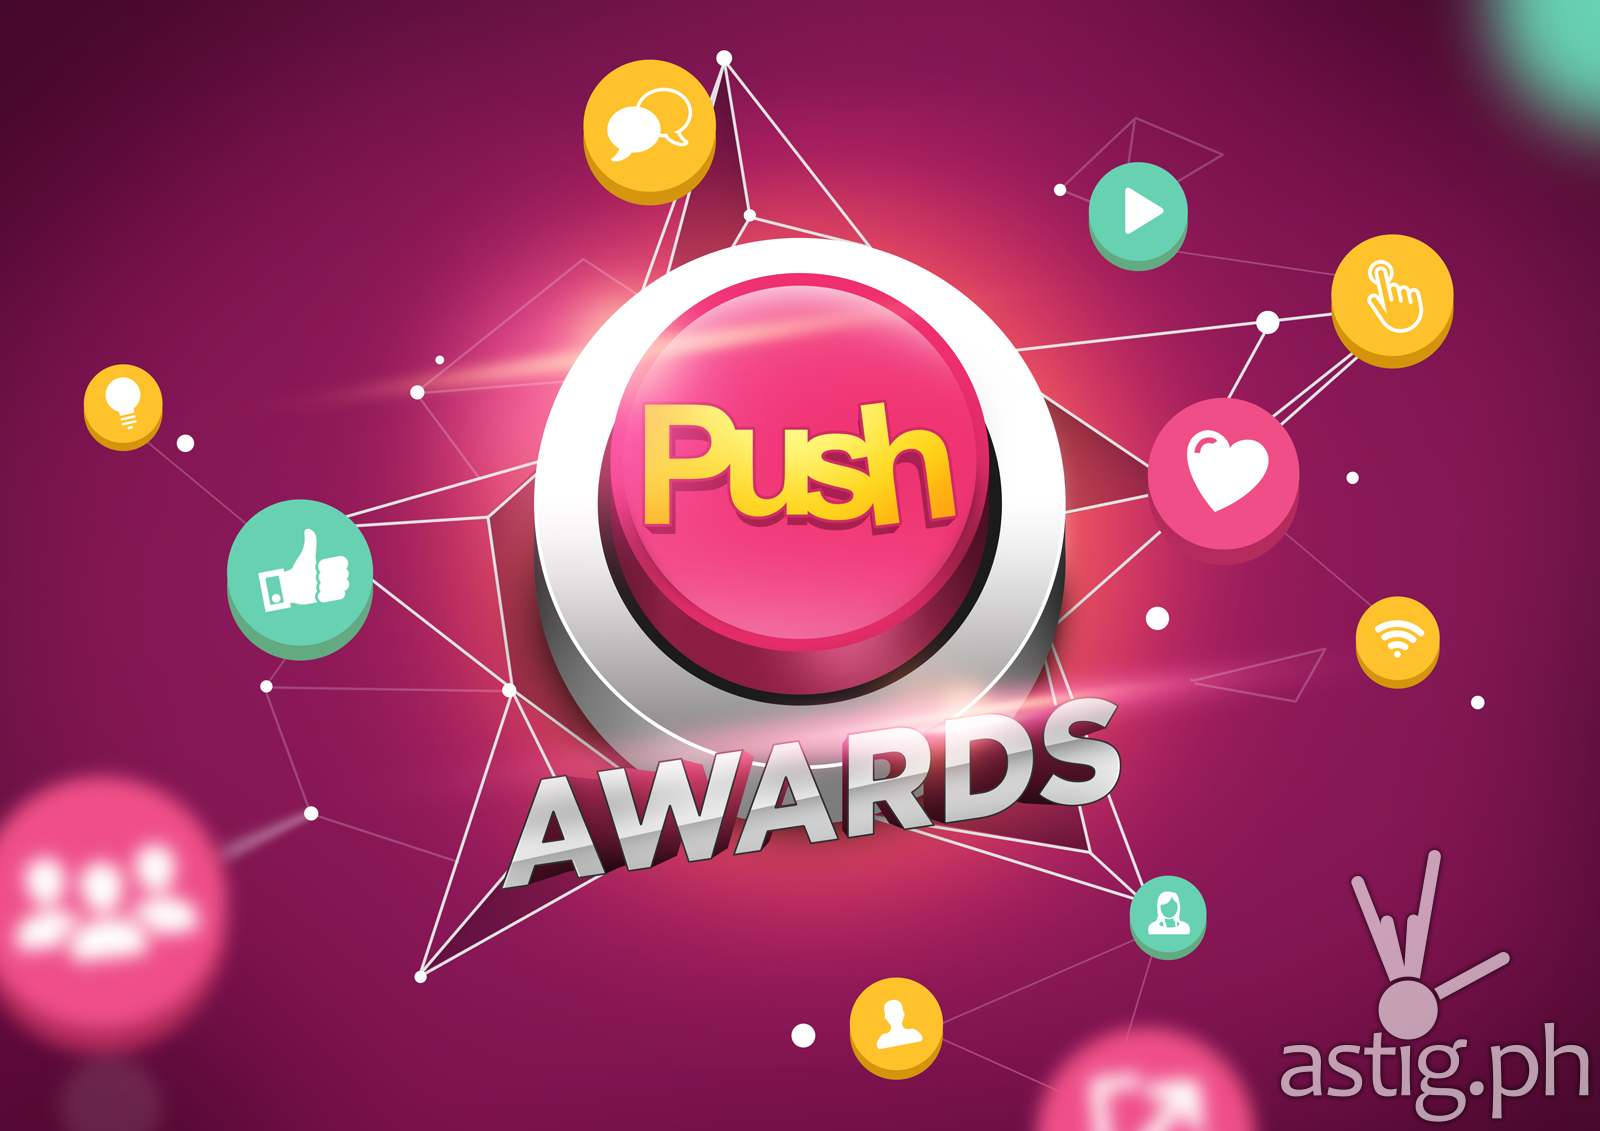 PUSH Awards logo